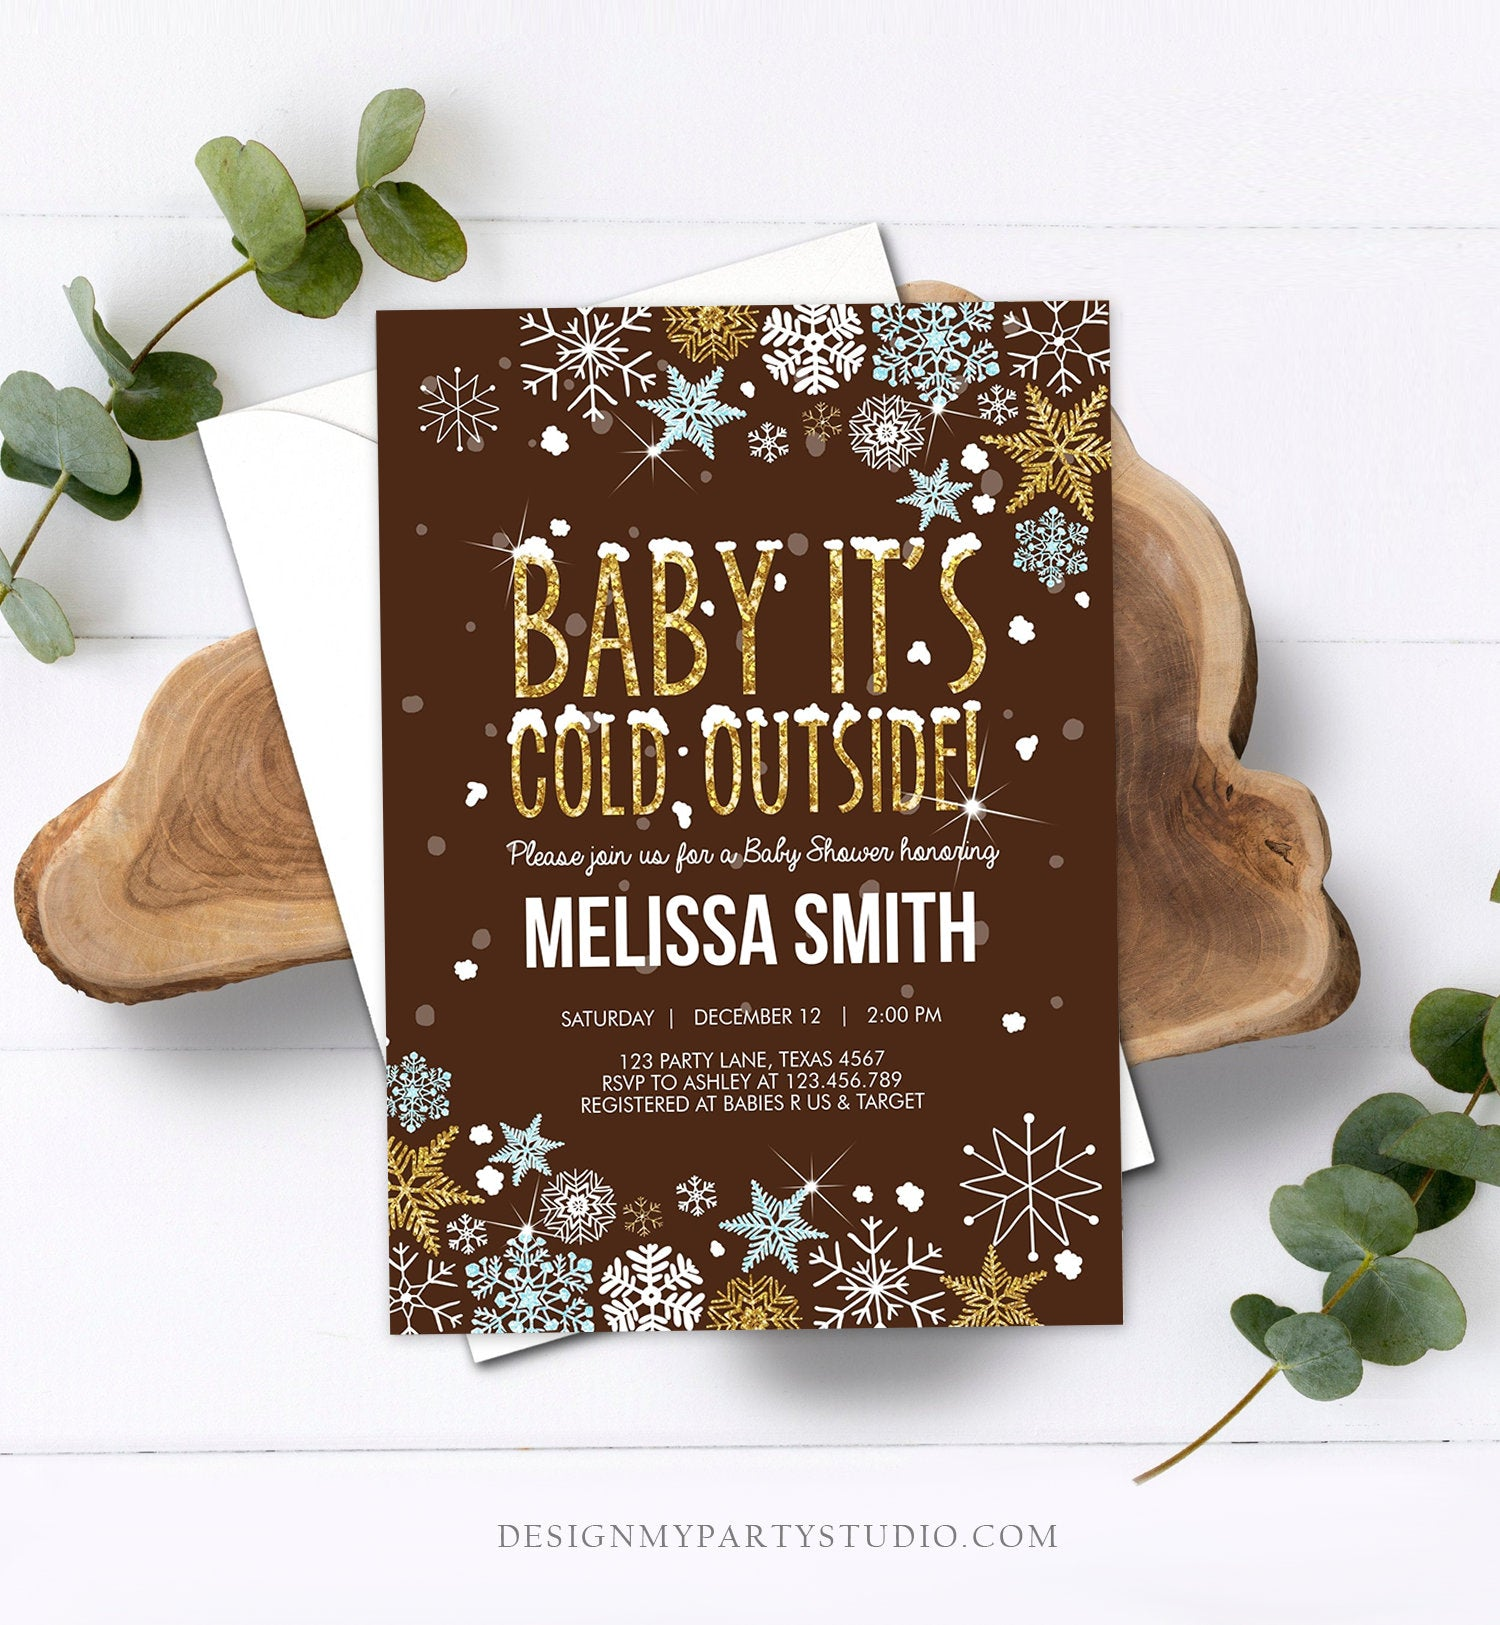 Editable Baby Its Cold Outside Baby Shower Invitation Blue Gold Boy Winter Little Snowflake Invitation Template Download Digital Corjl 0033